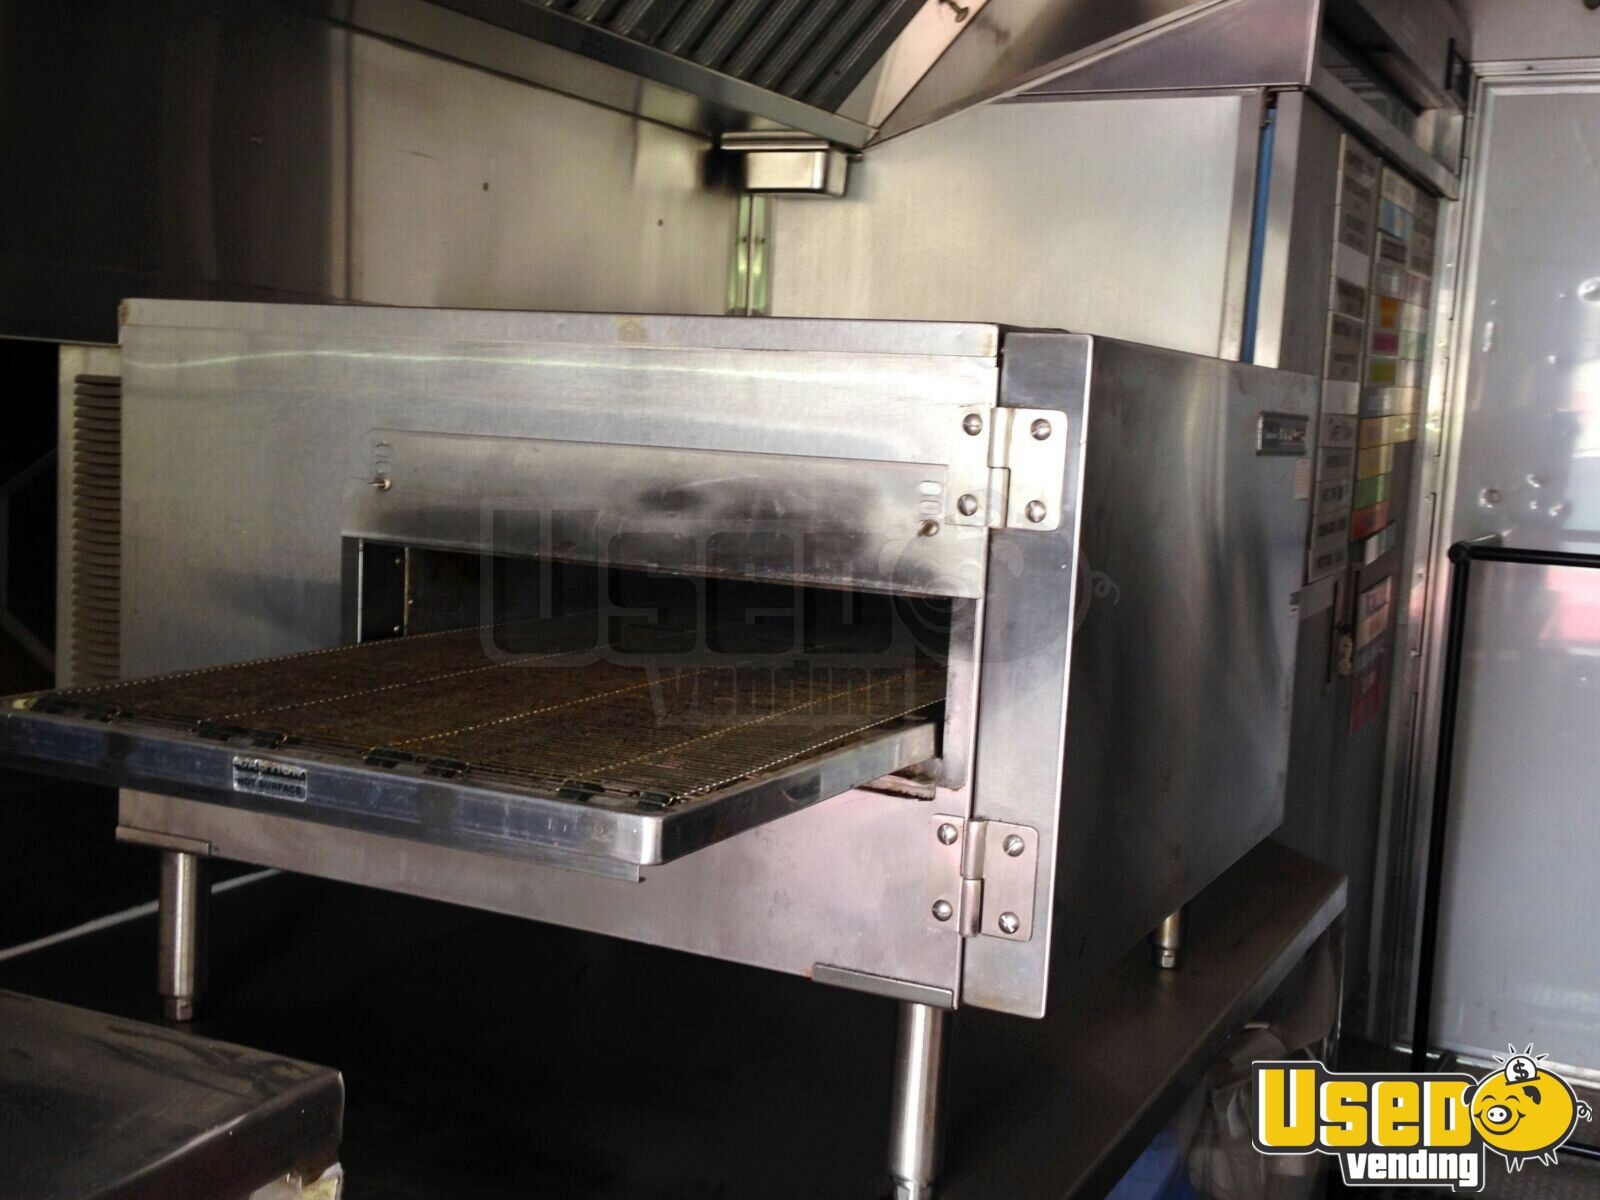 1996 Grumman Catering Food Truck Cabinets California Gas Engine for Sale - 4